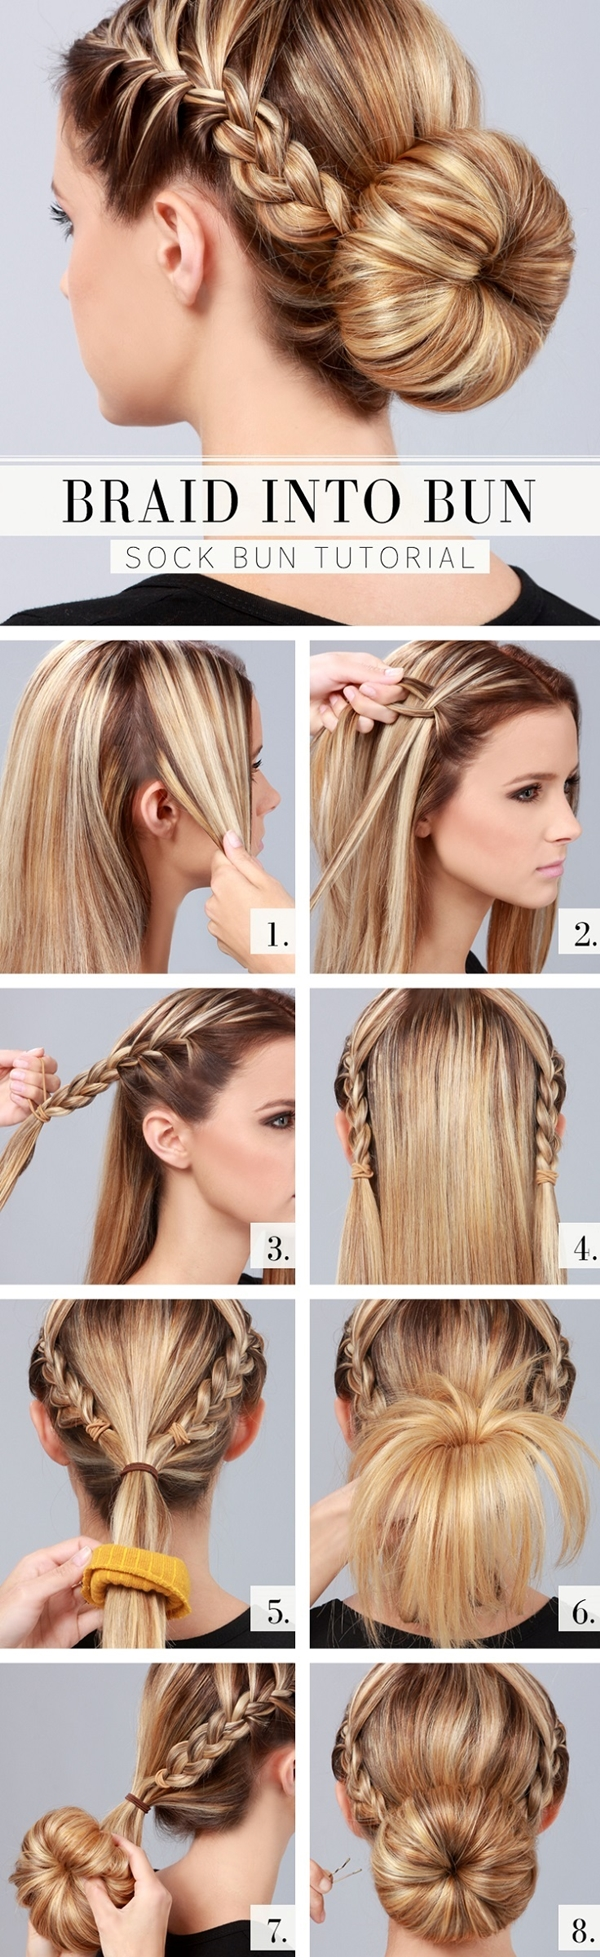 Simple and Sexy Hairstyle for Teen Girls -10